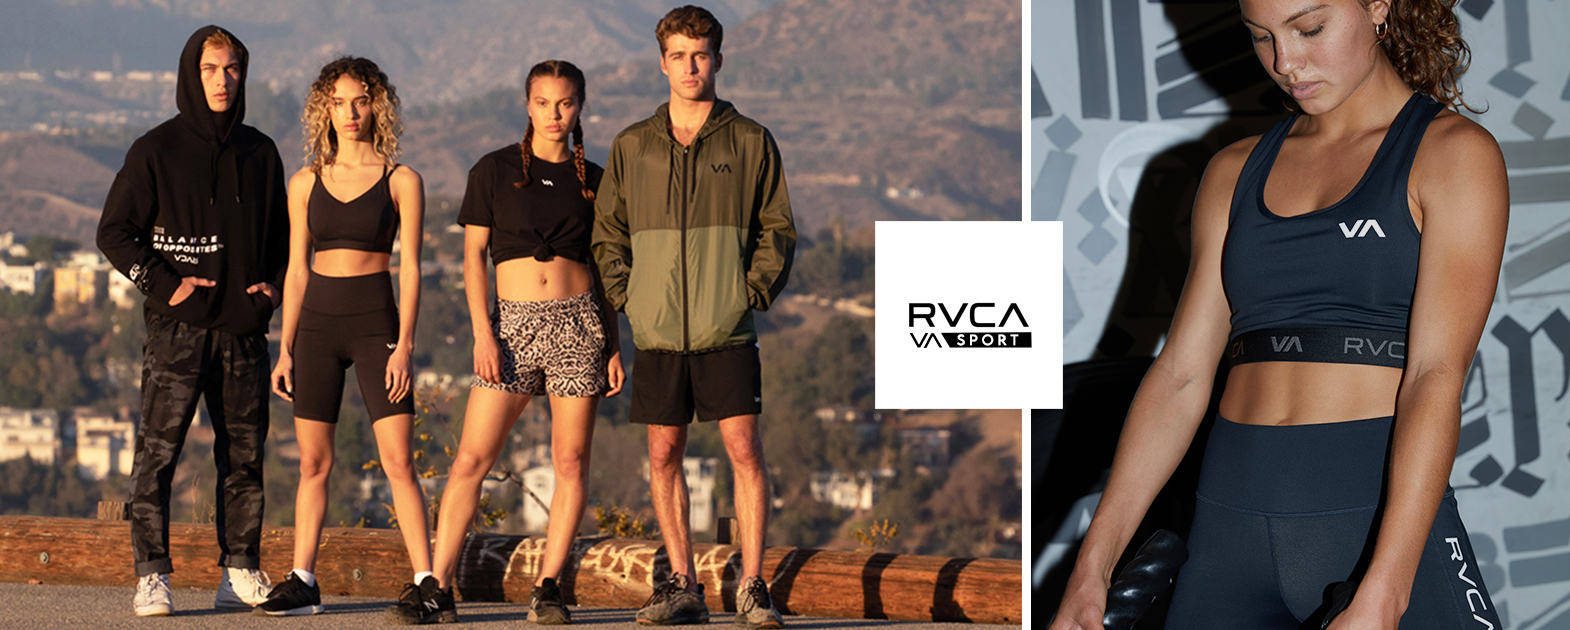 RVCA Sport Collection